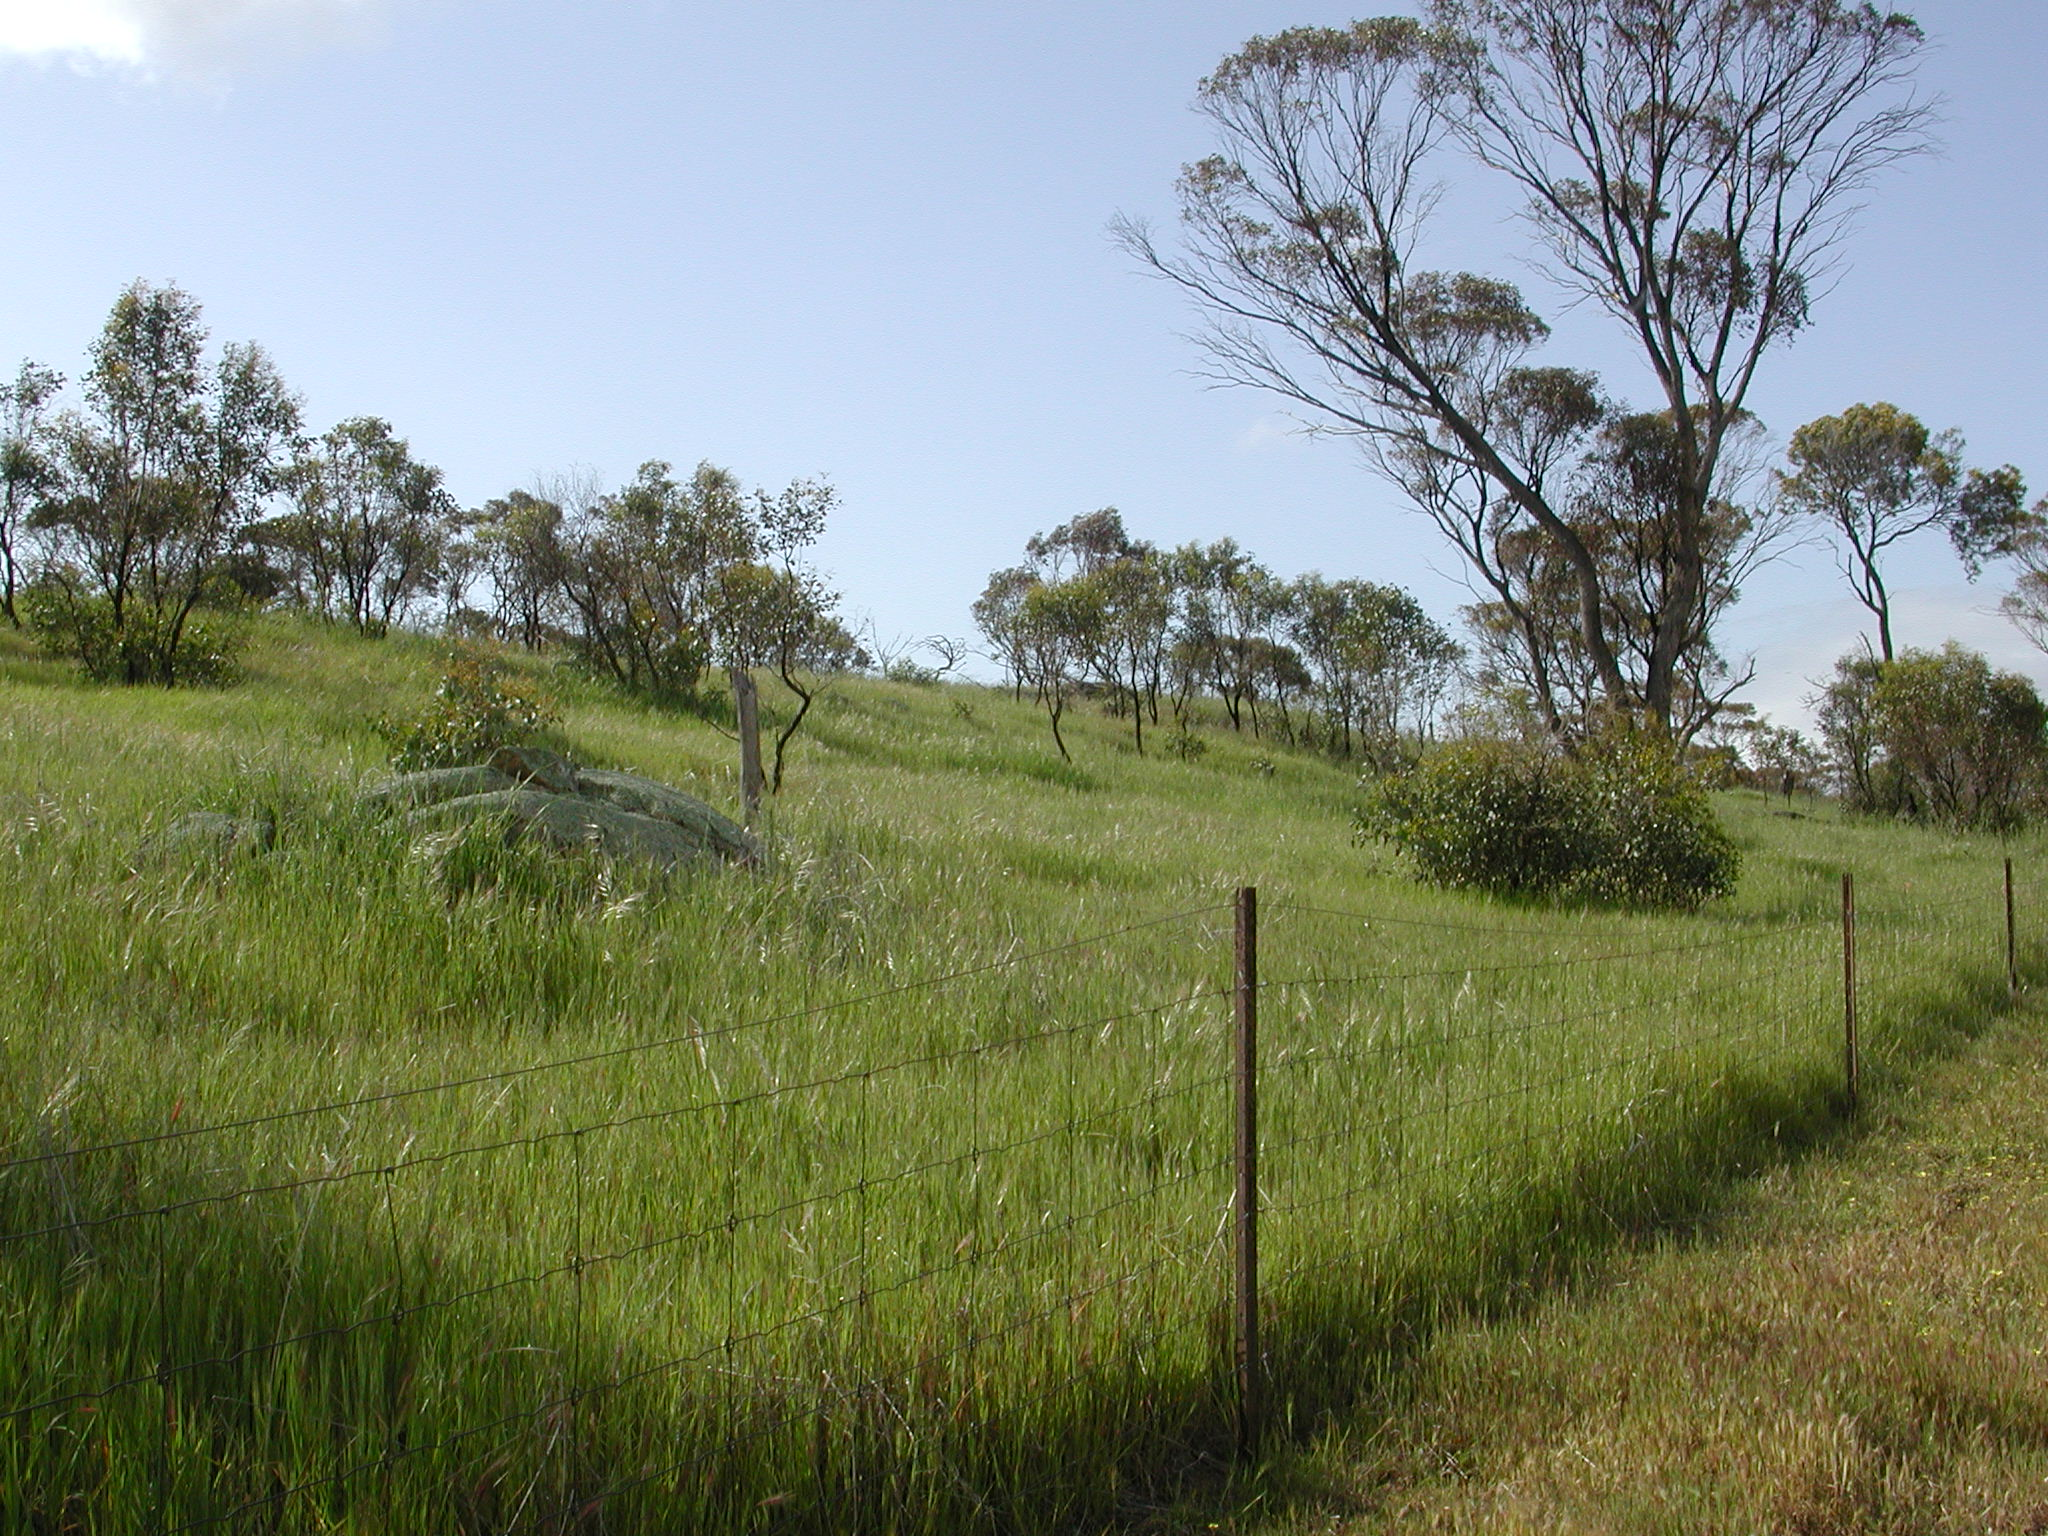 A wire fenceline with regenerating woodland on one side and short grass on the other